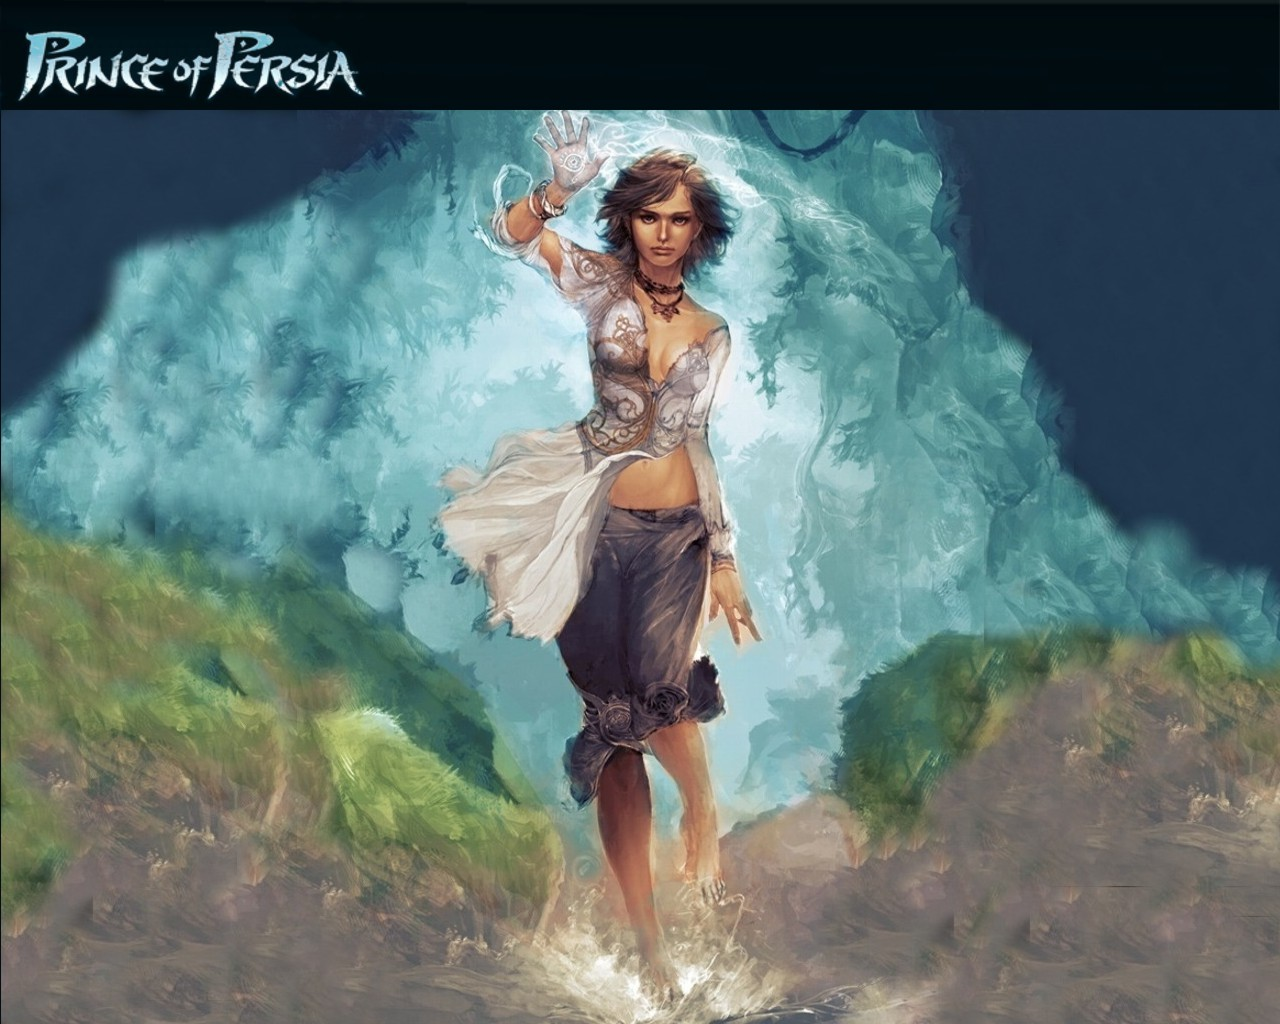 Prince of persia which elika porn tube